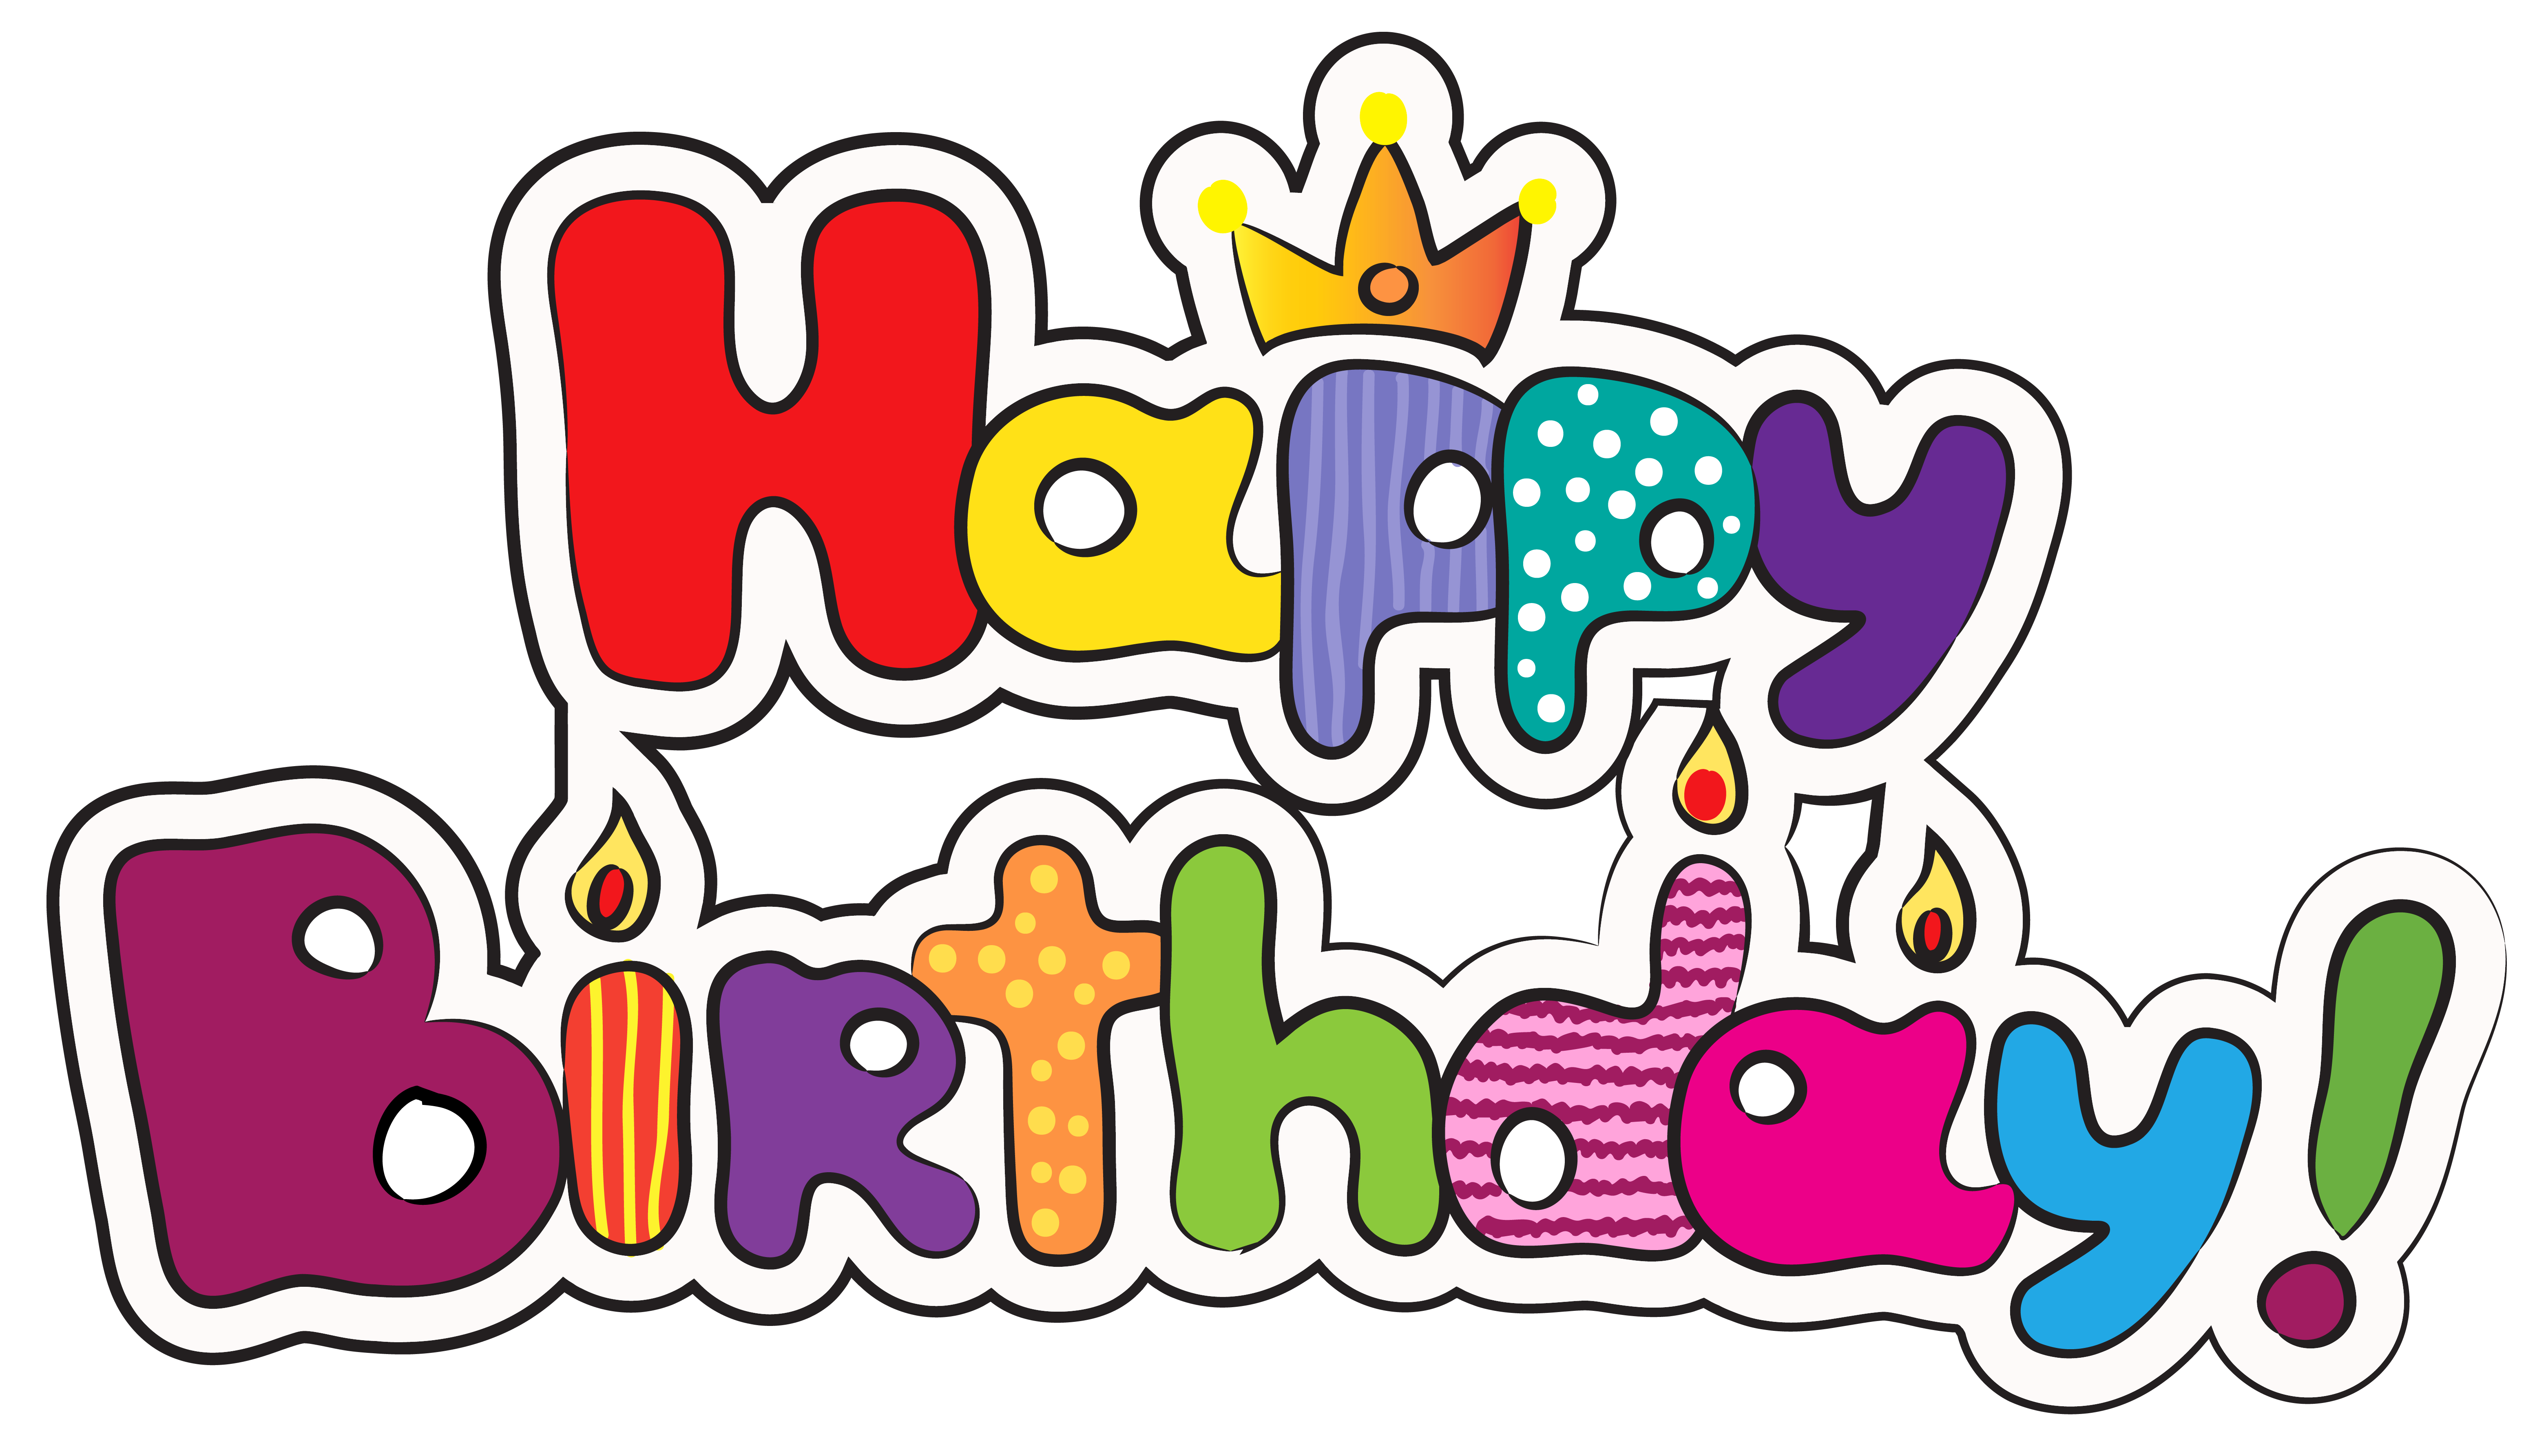 Birthday clip art png. Happy clipart free cliparts png royalty free download